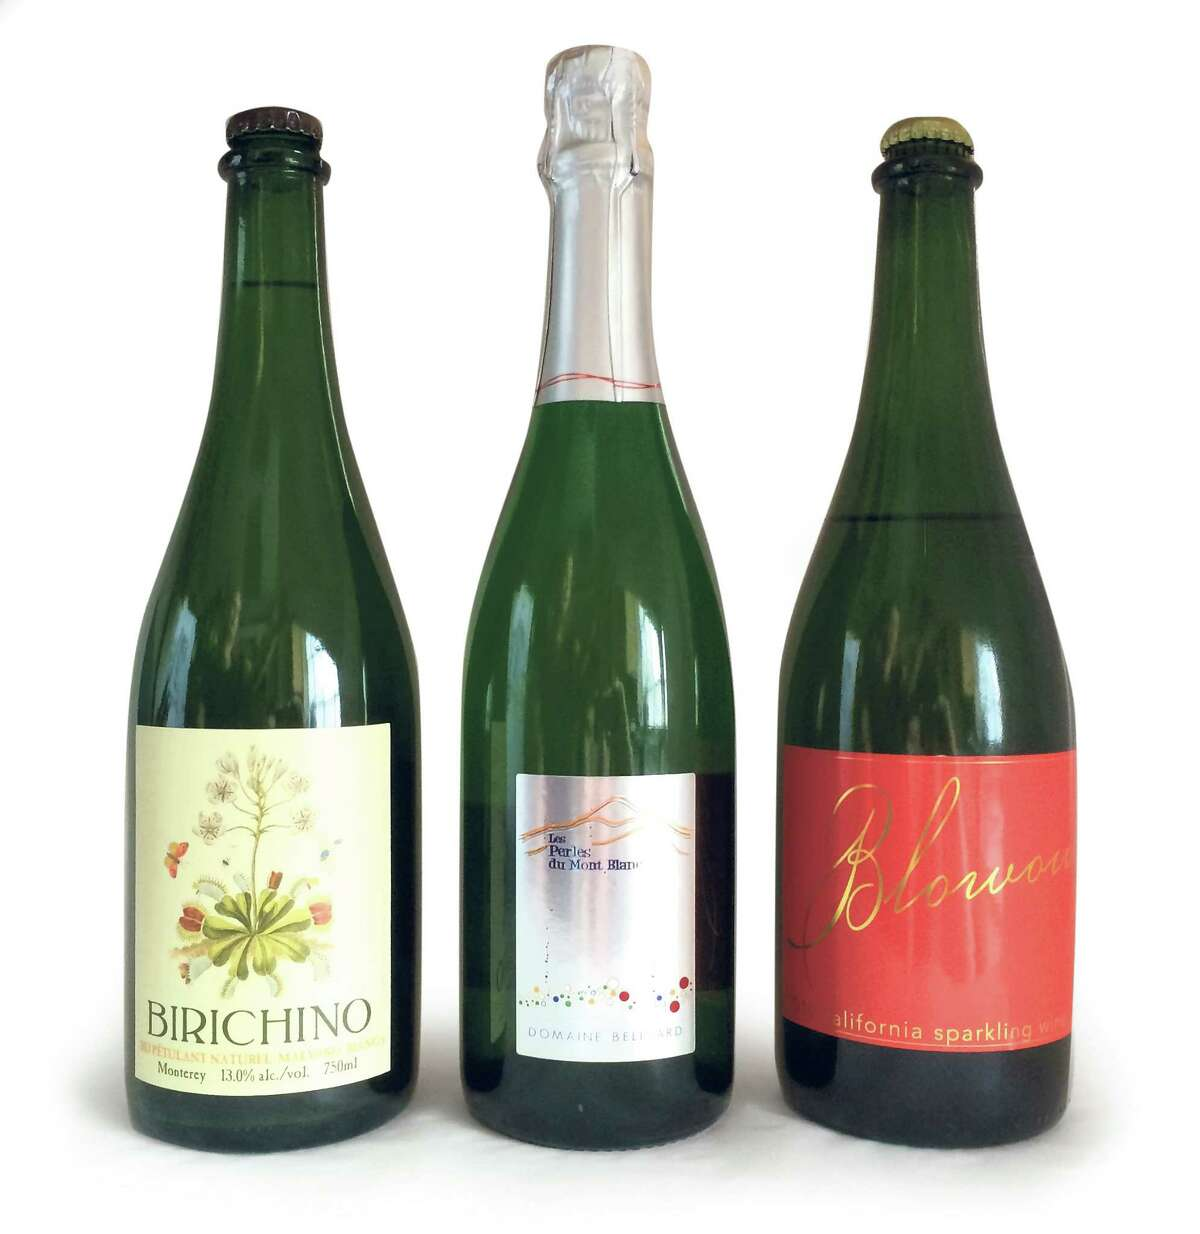 From left to right: The 2013 Birichino Malvasia Petulant Naturel; the NV Belluard Les Perles du Mont Blanc Savoie Sparkling; and the 2014 Scholium Project Blowout.